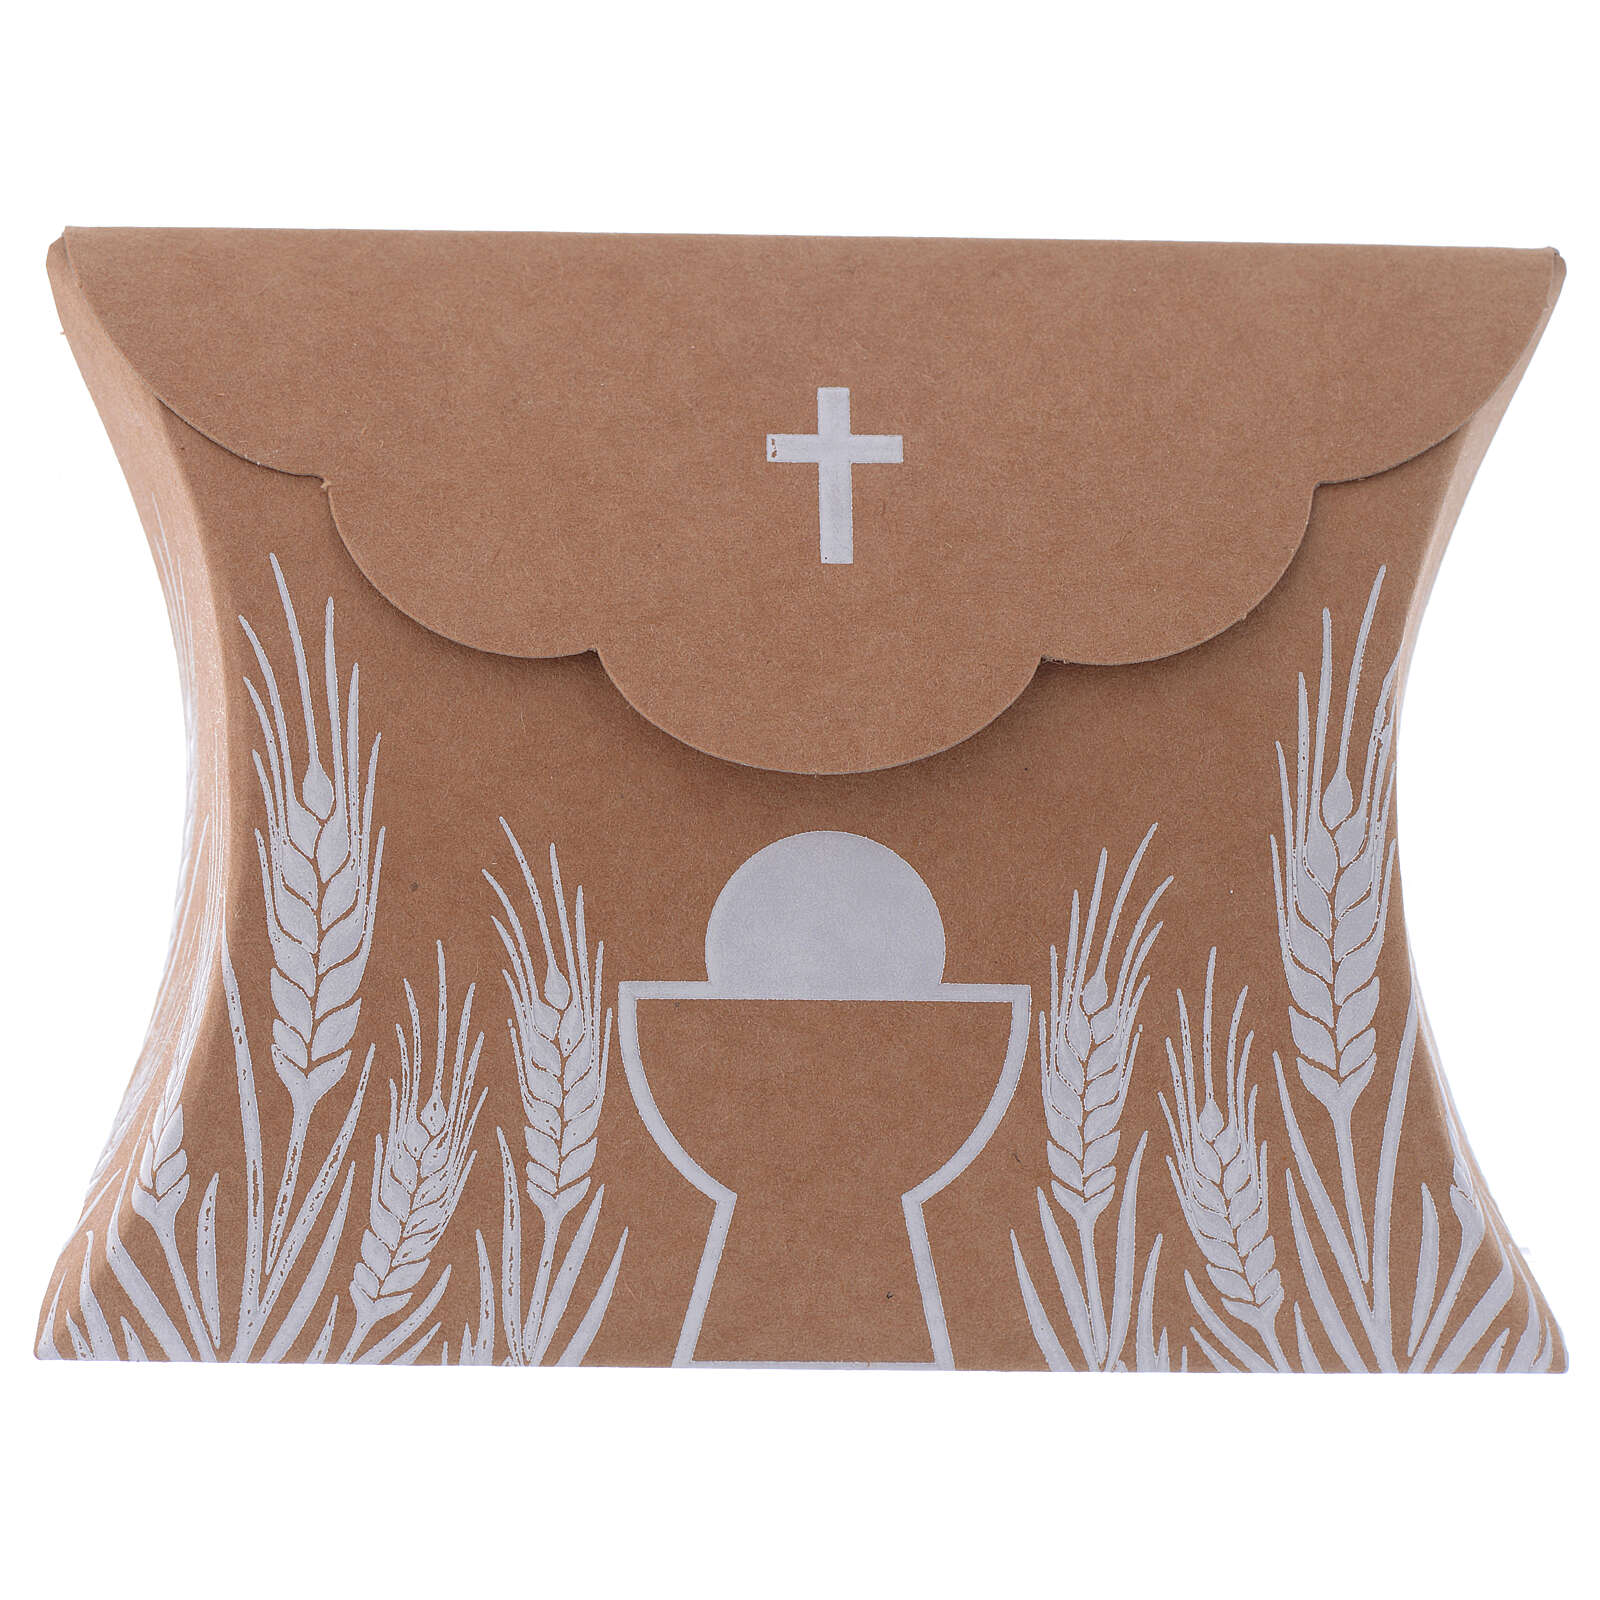 Communion gift box brown paperboard h 3.35 in 3